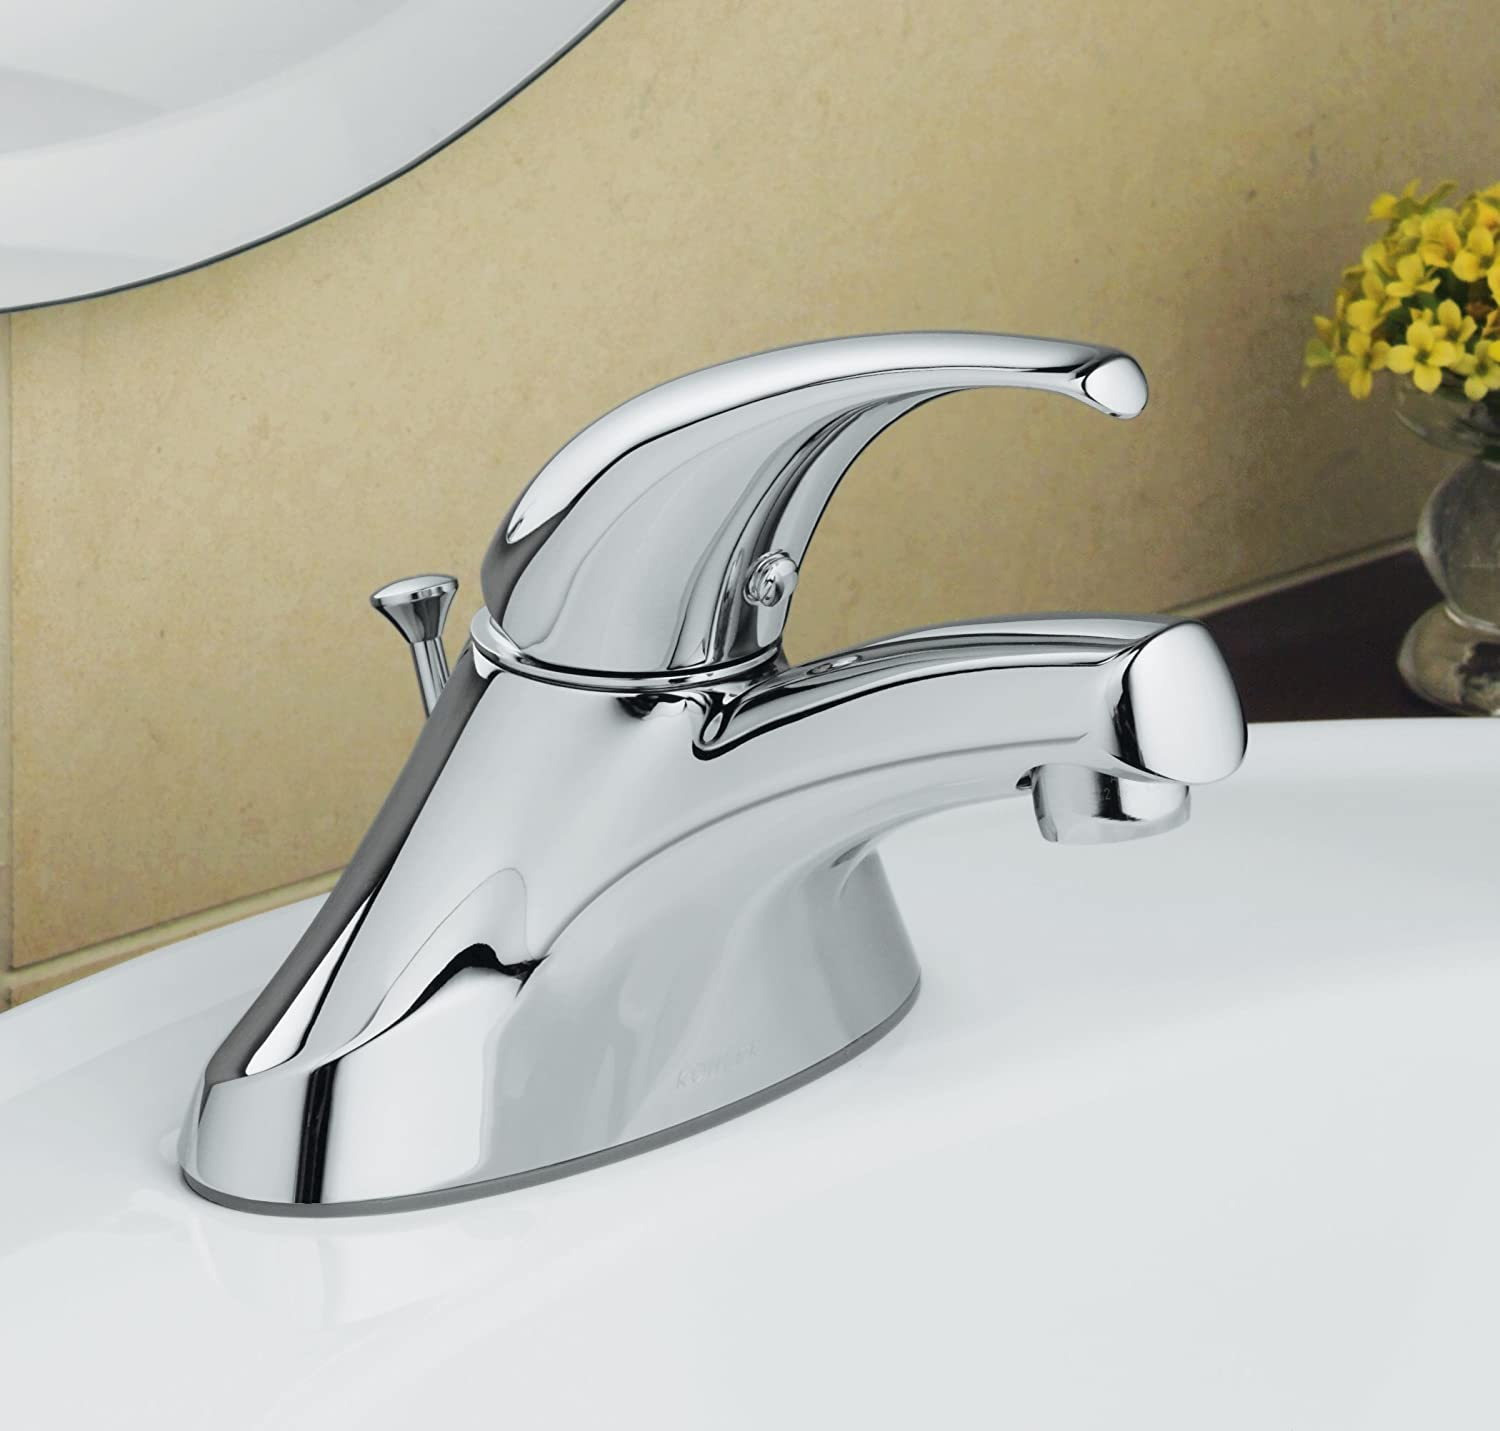 l kitchen kohler coralais faucet reviews k review